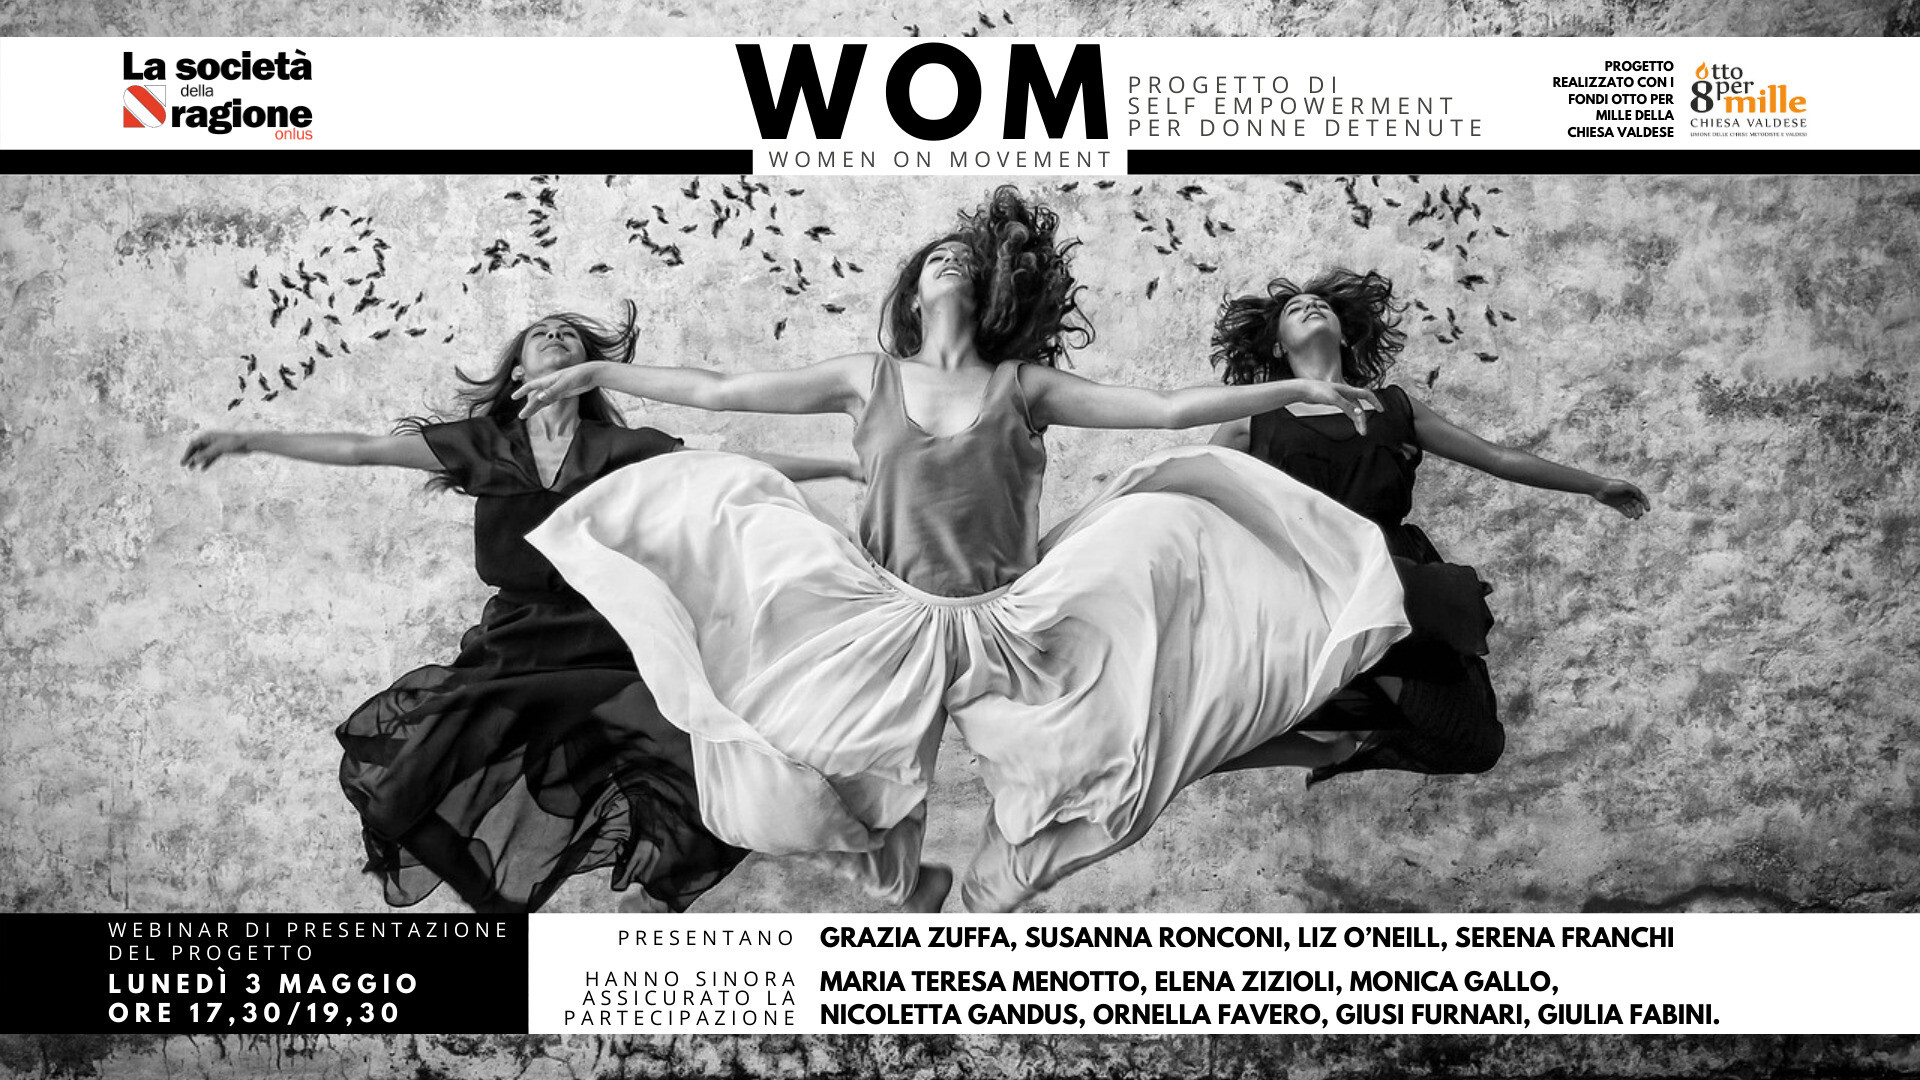 donne carcere wom